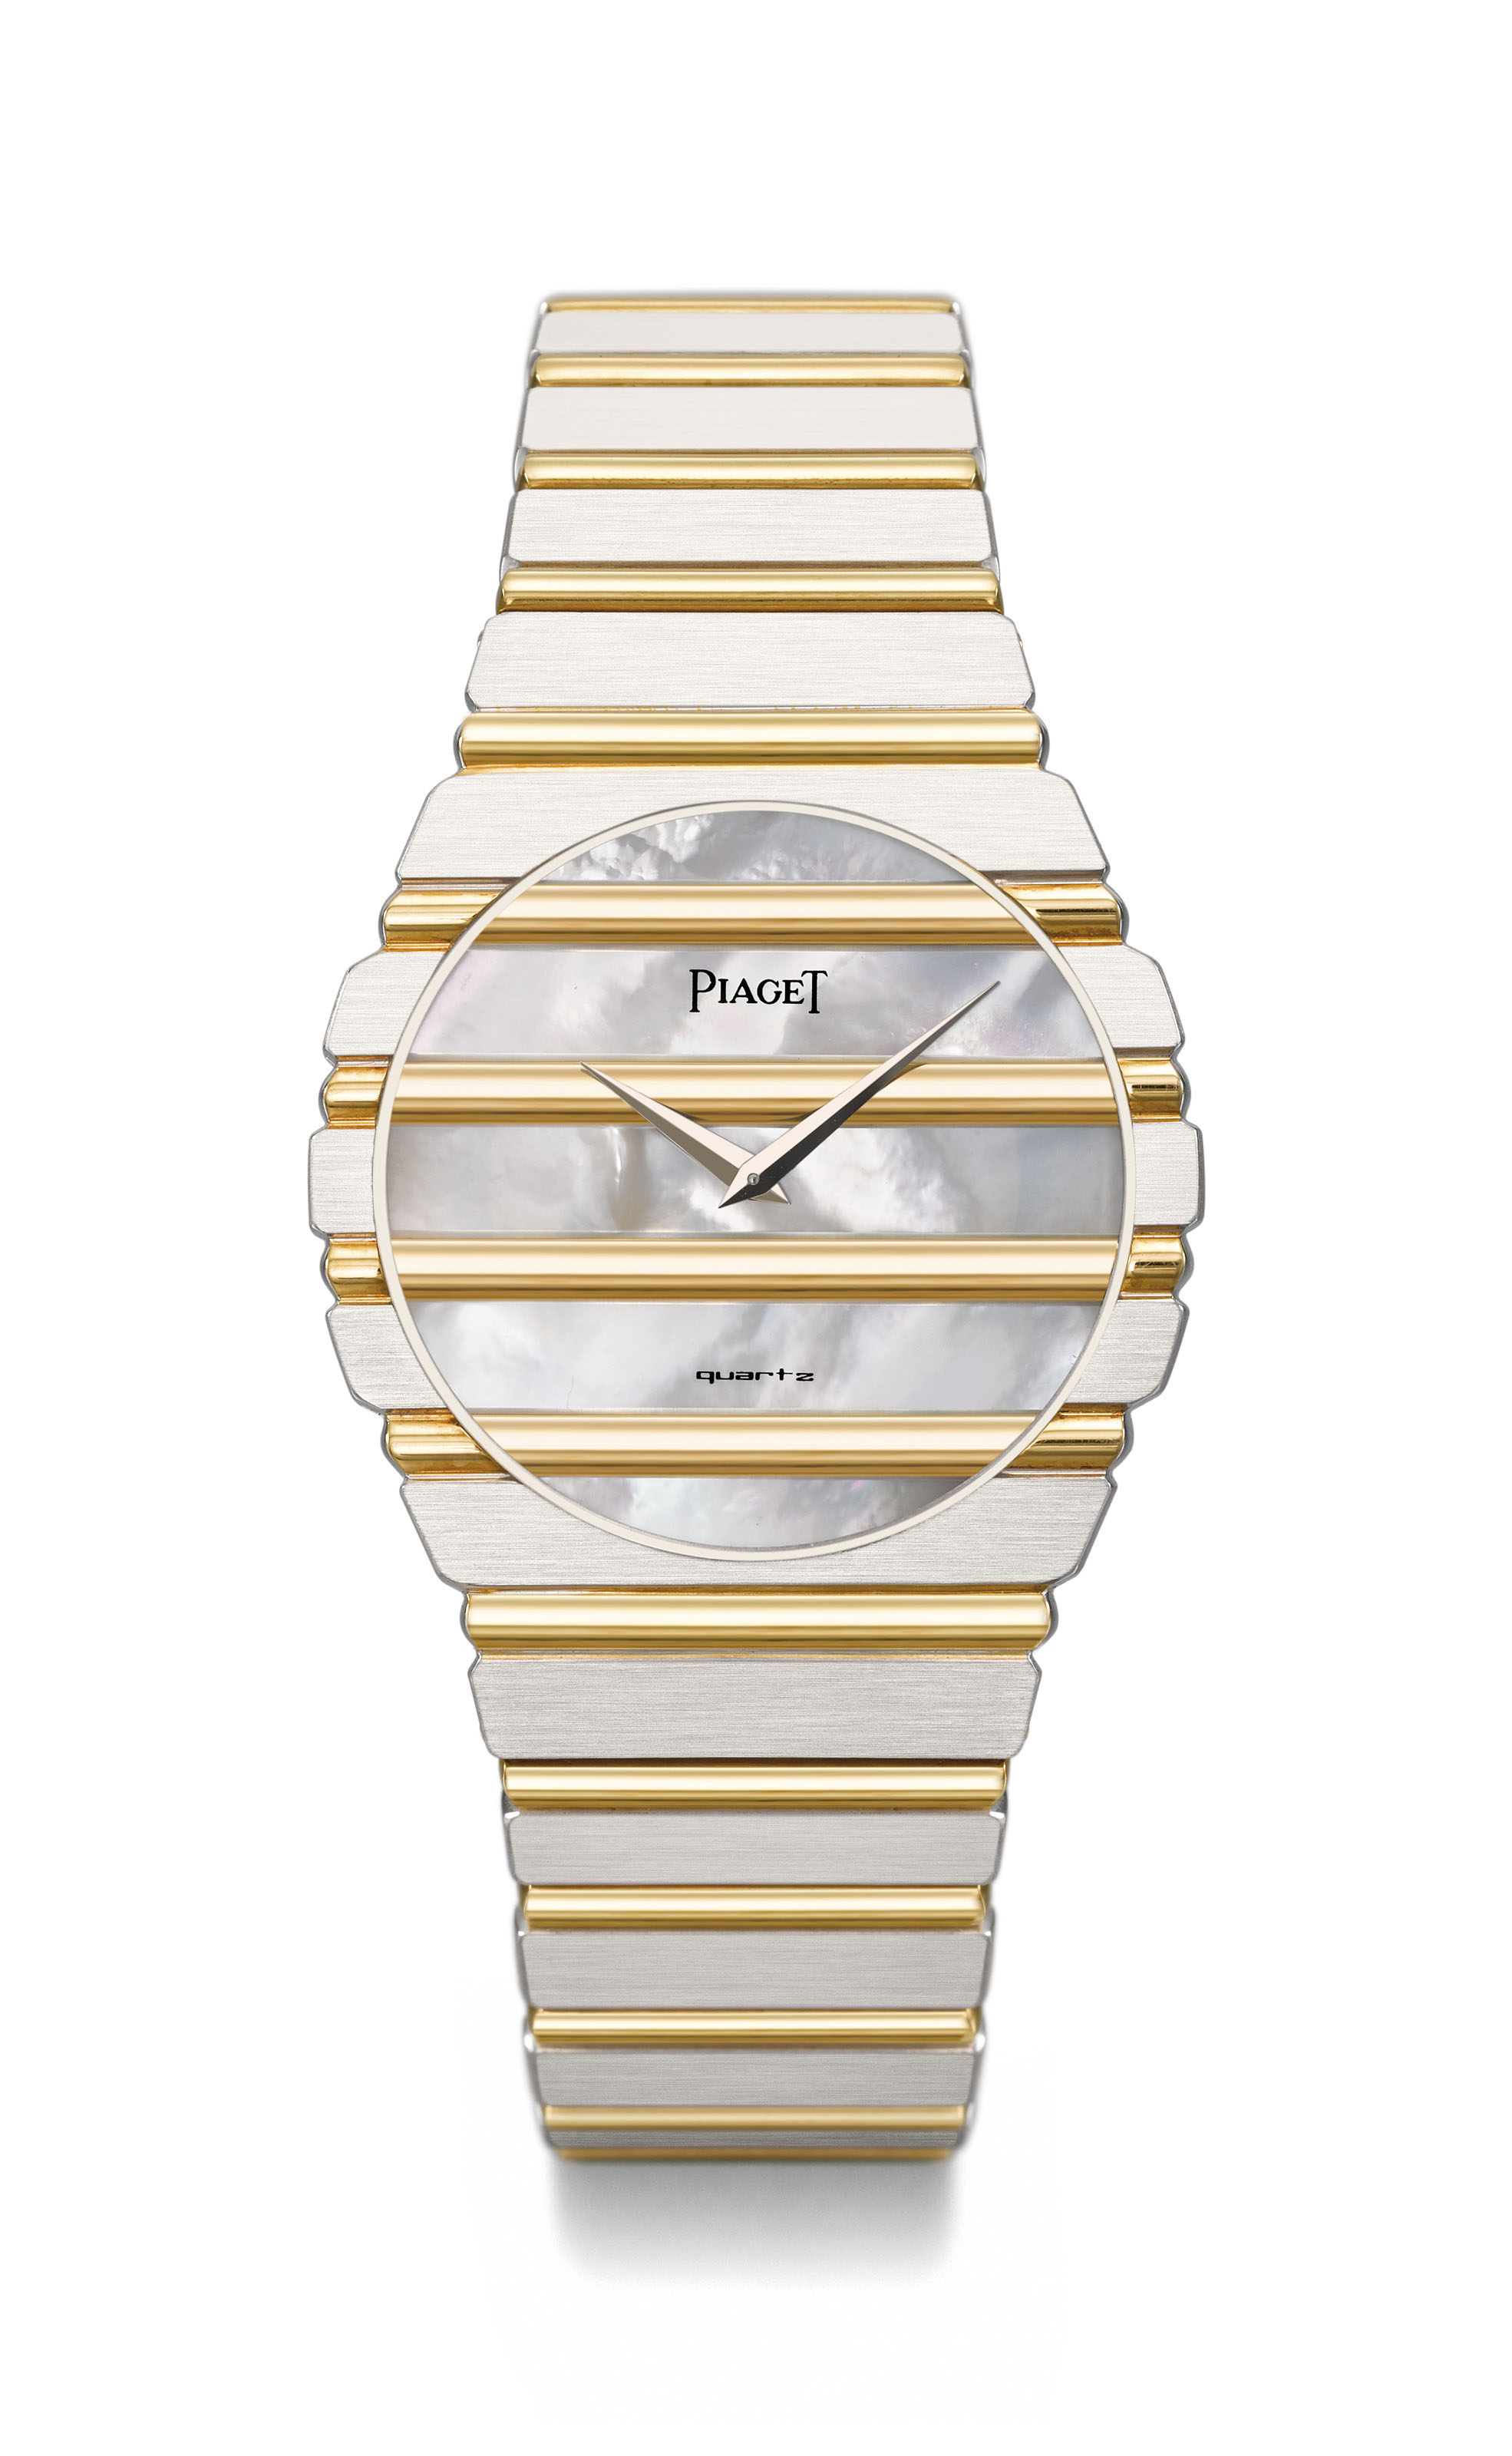 Piaget A very unusual and att